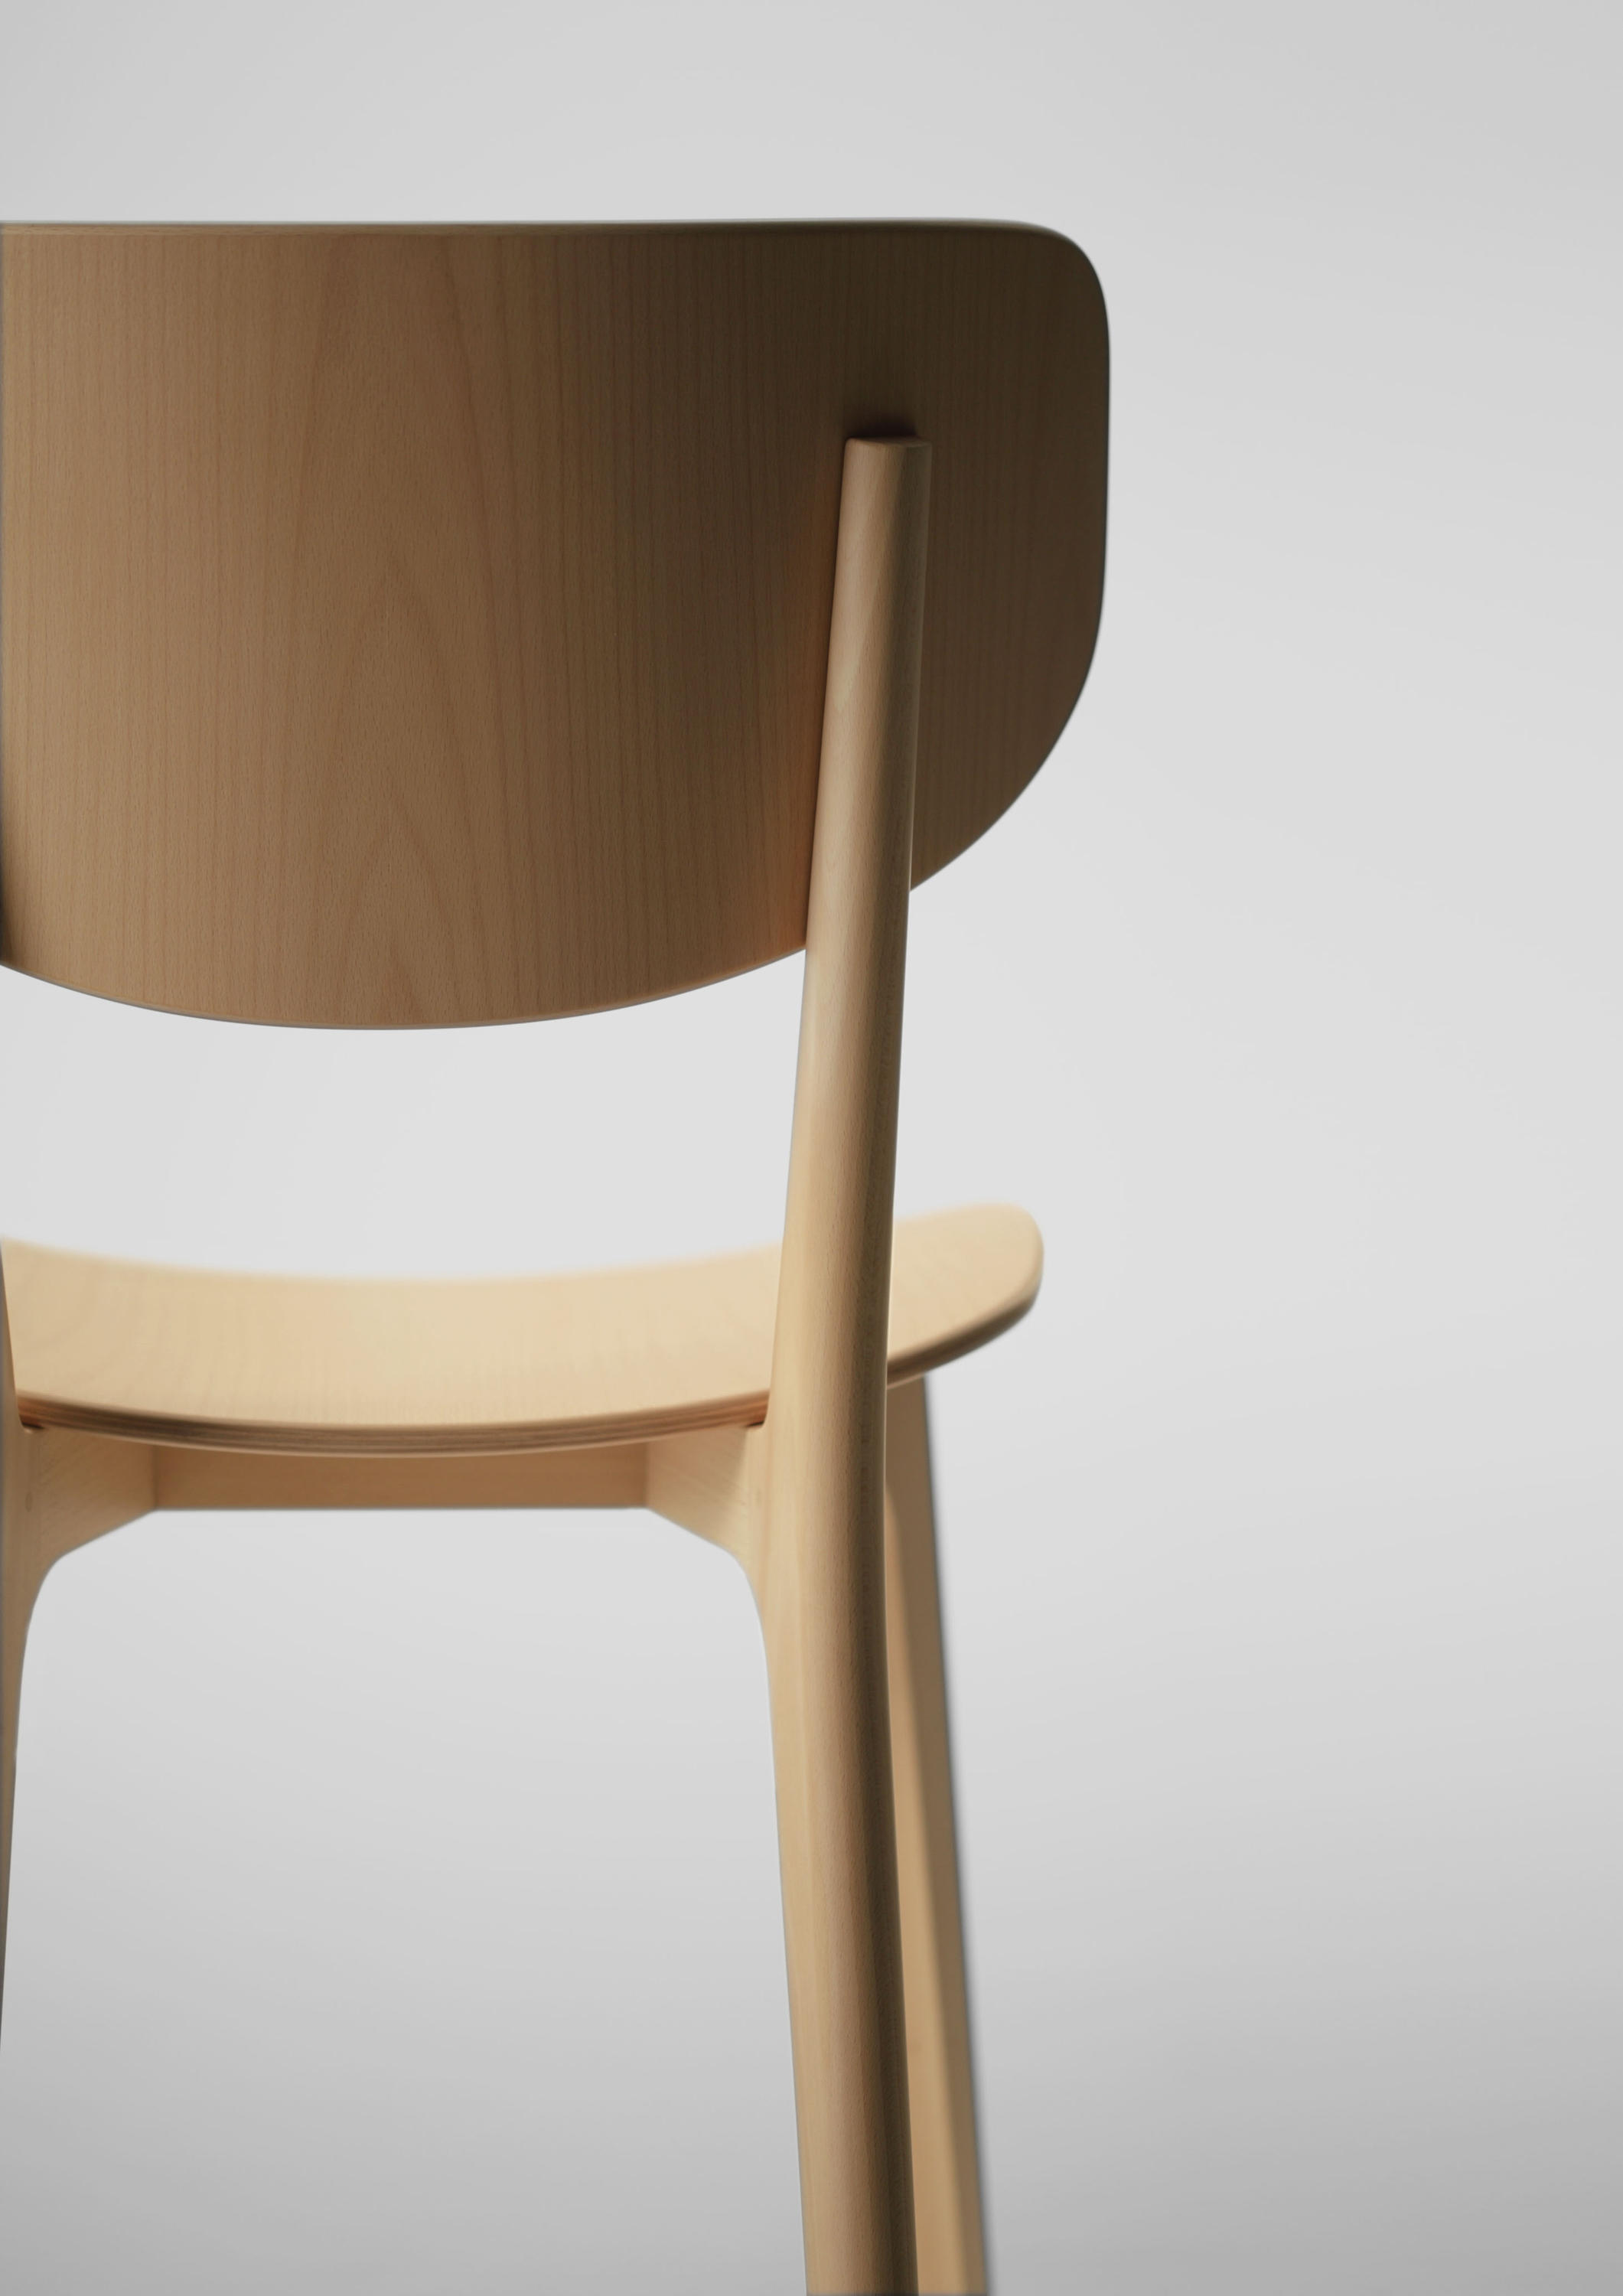 how to make a wooden chair taller